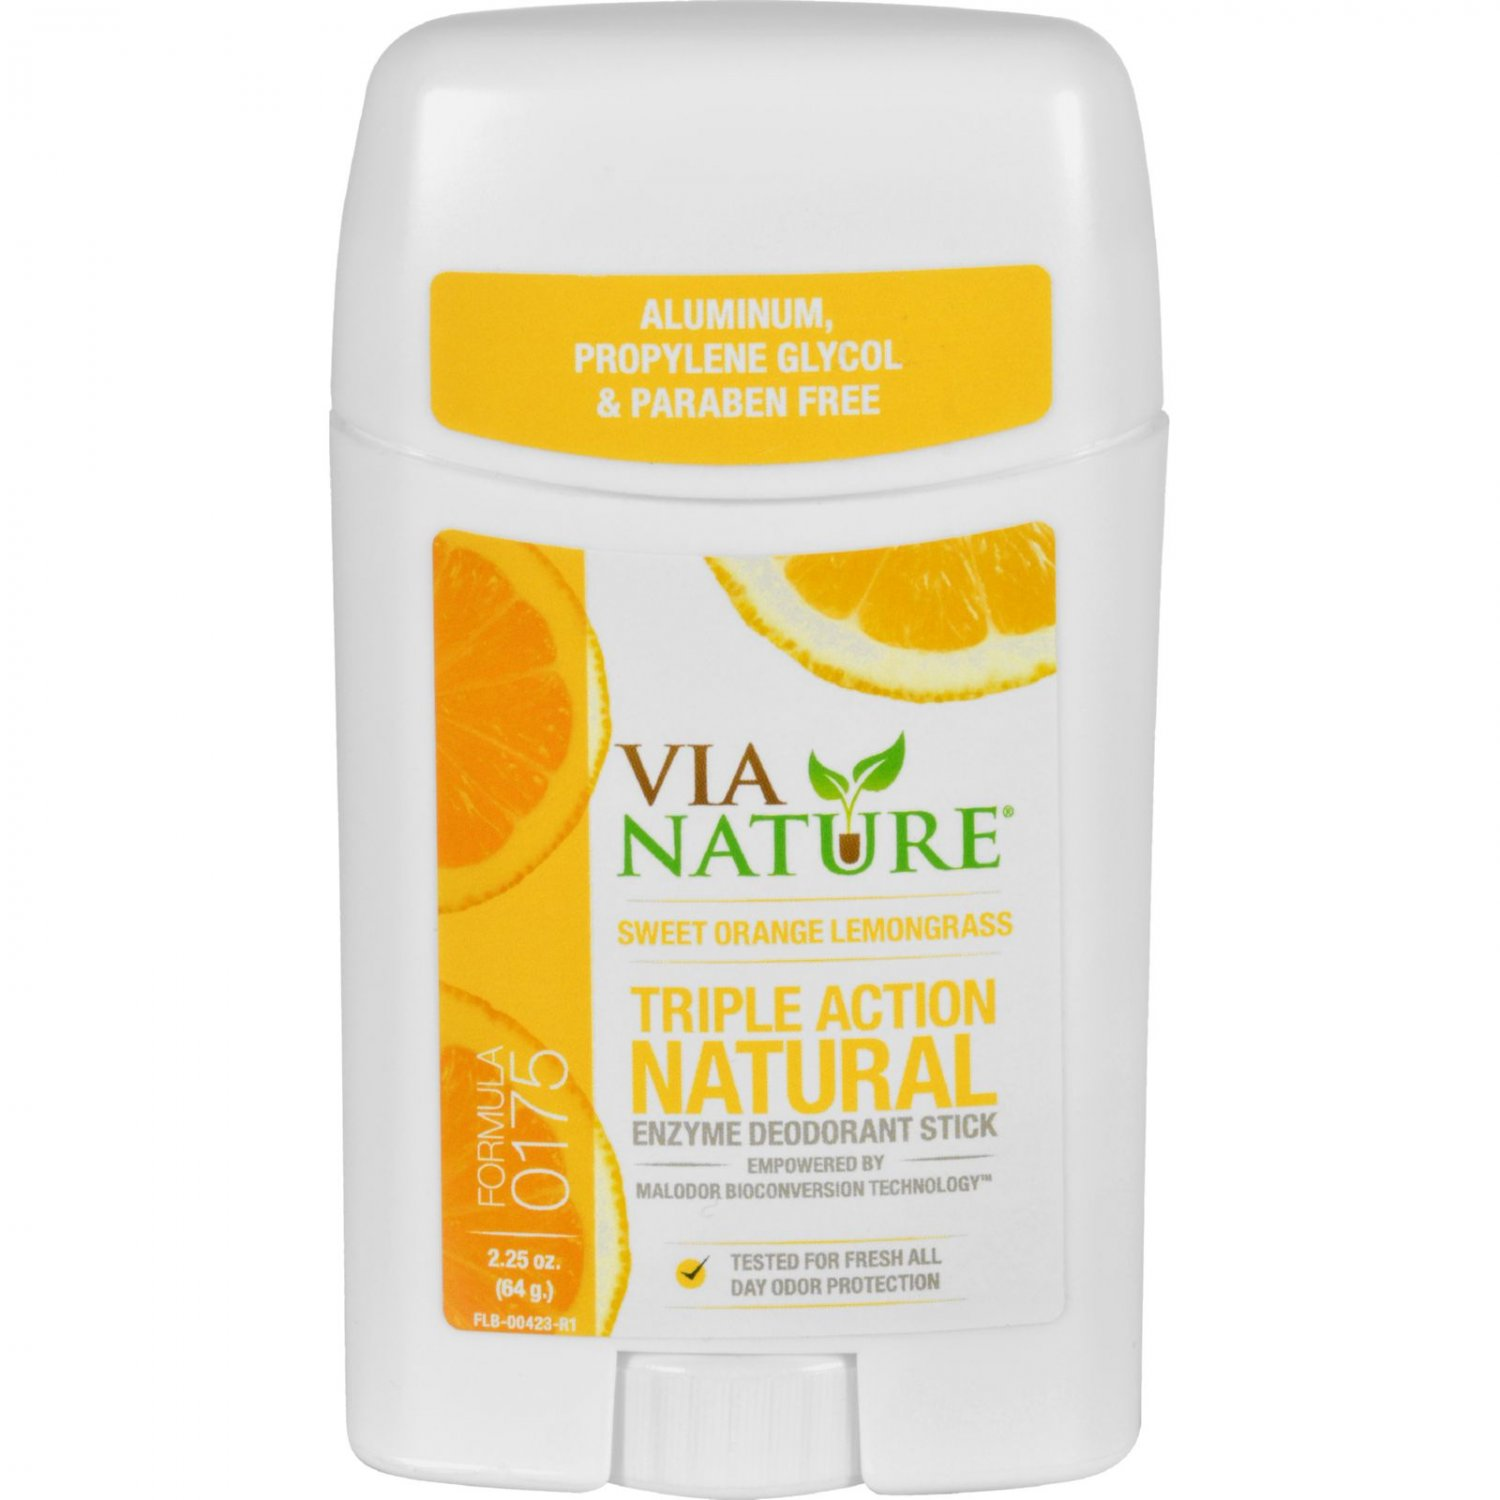 Via Nature Deodorant - Stick - Sweet Orange Lemongrass - 2.25 oz